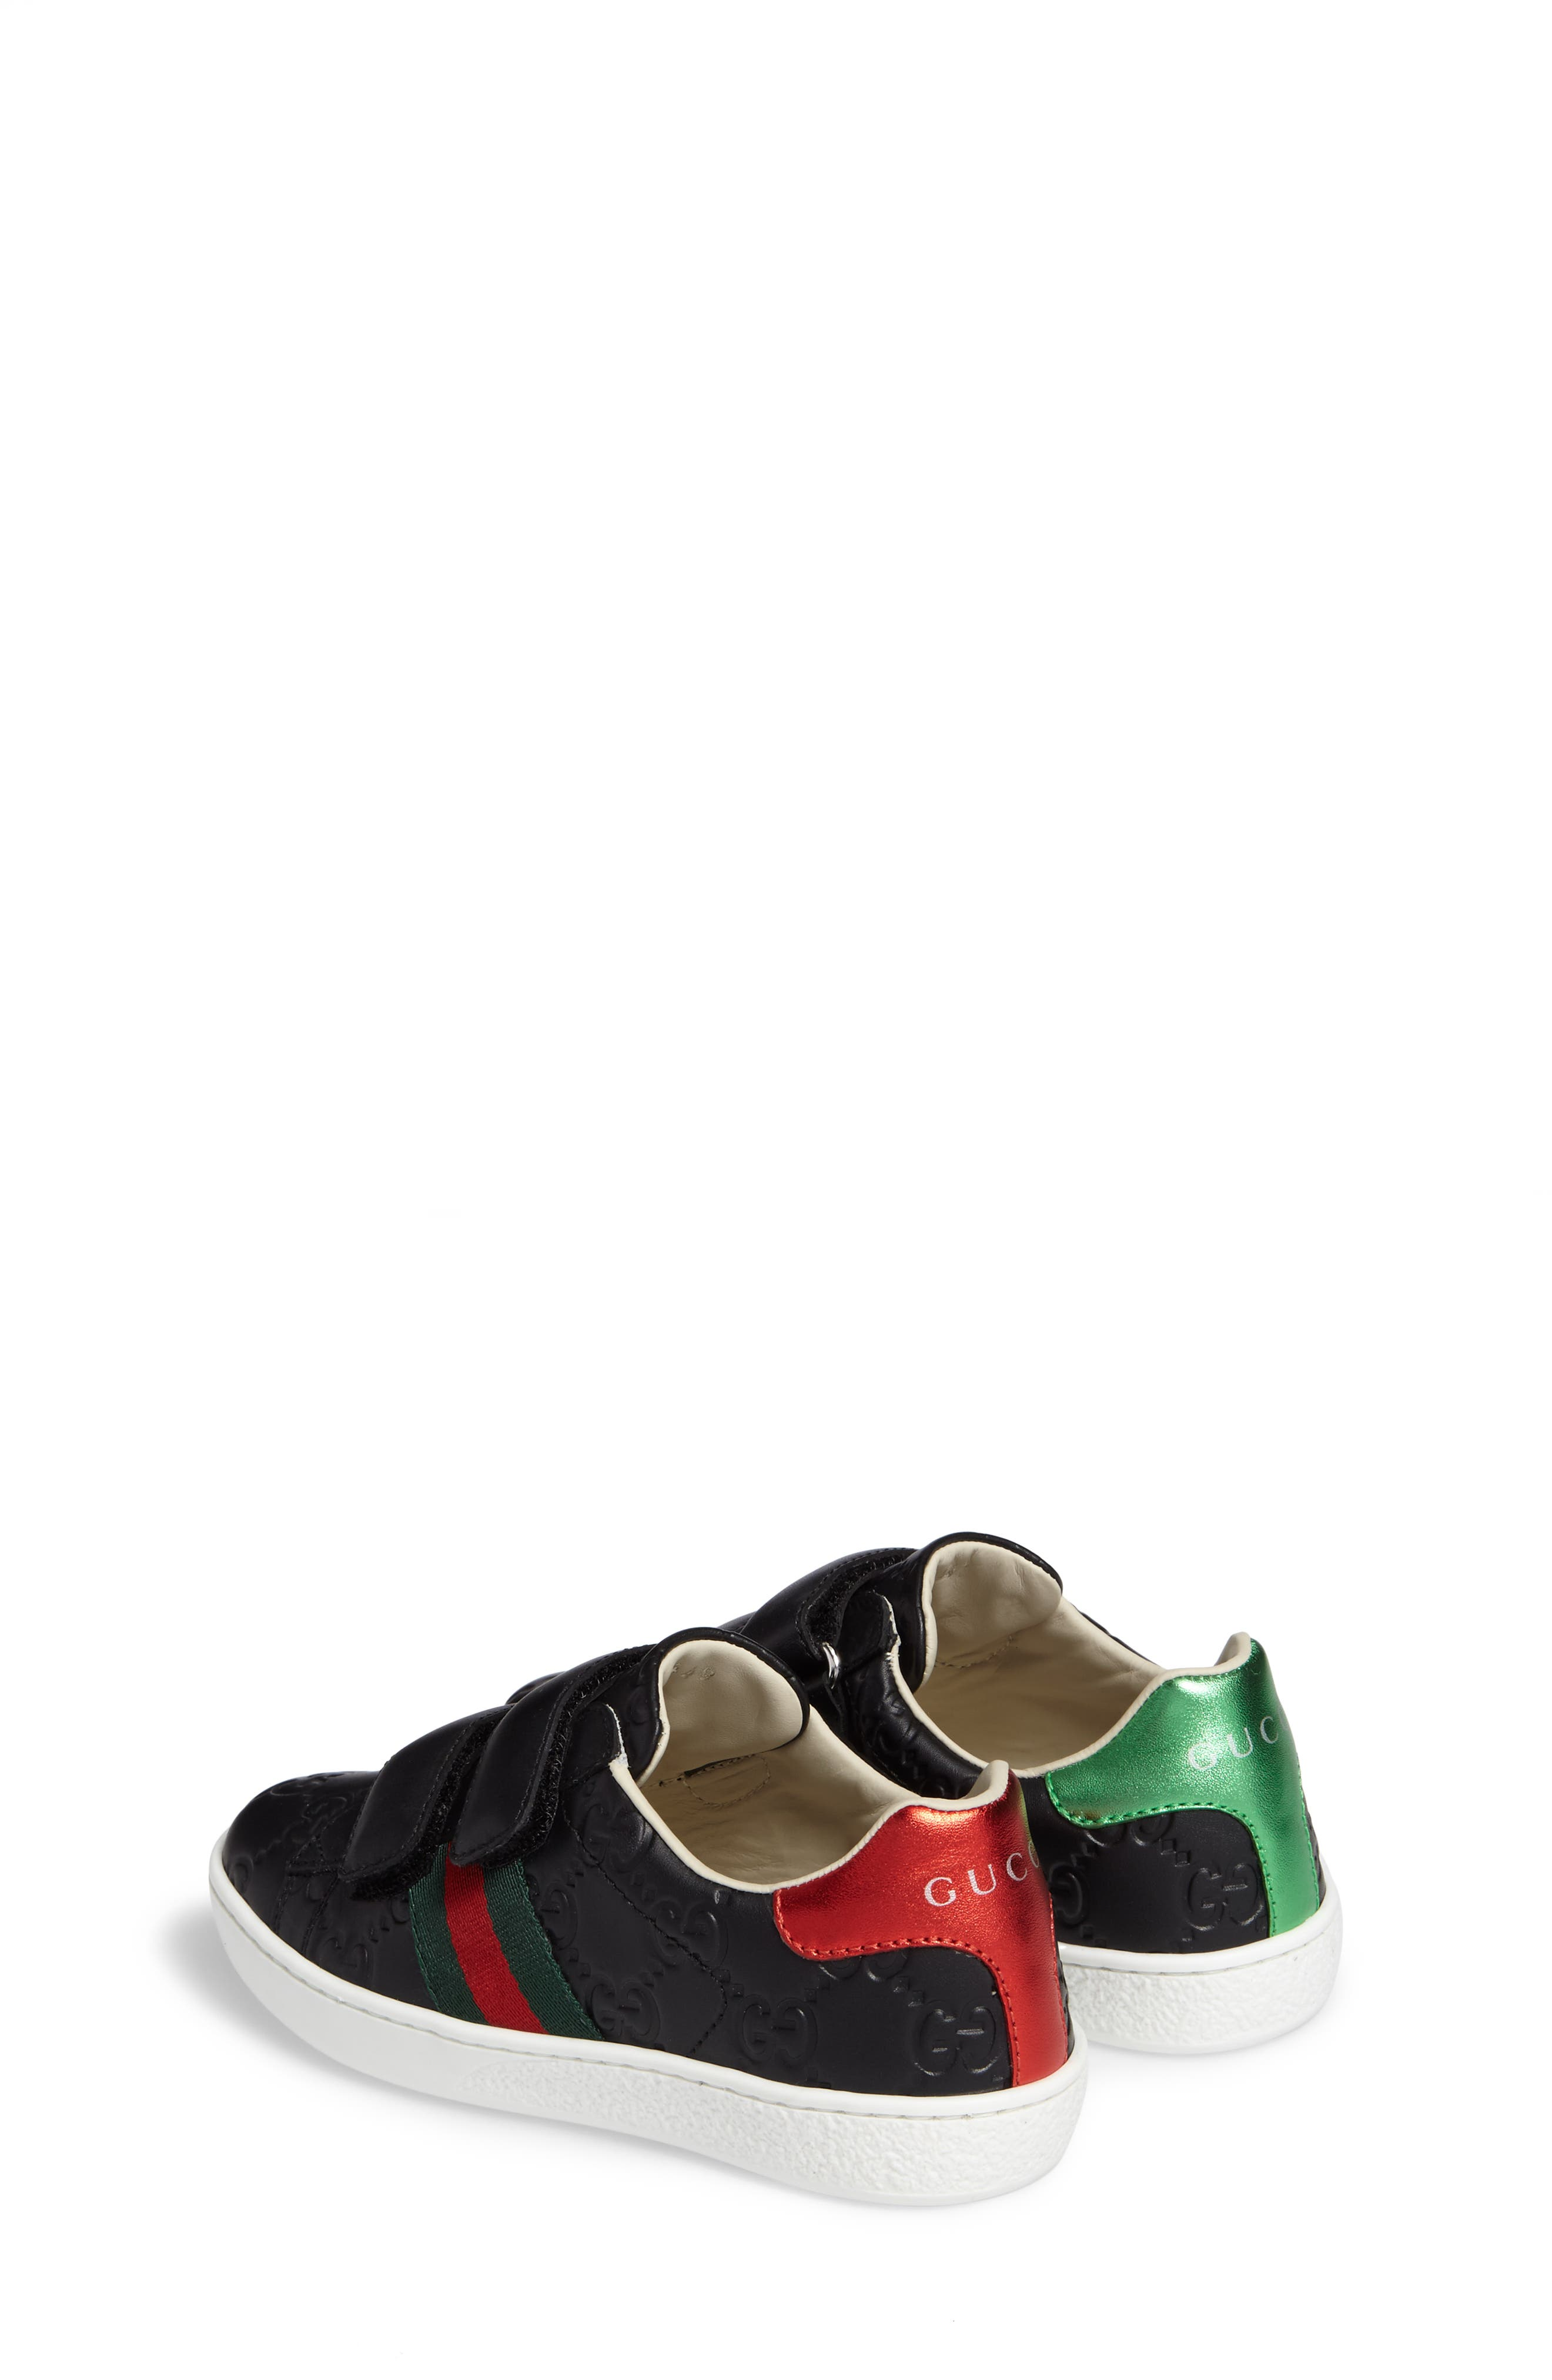 Alternate Image 2  - Gucci New Ace Sneaker (Toddler & Little Kid)